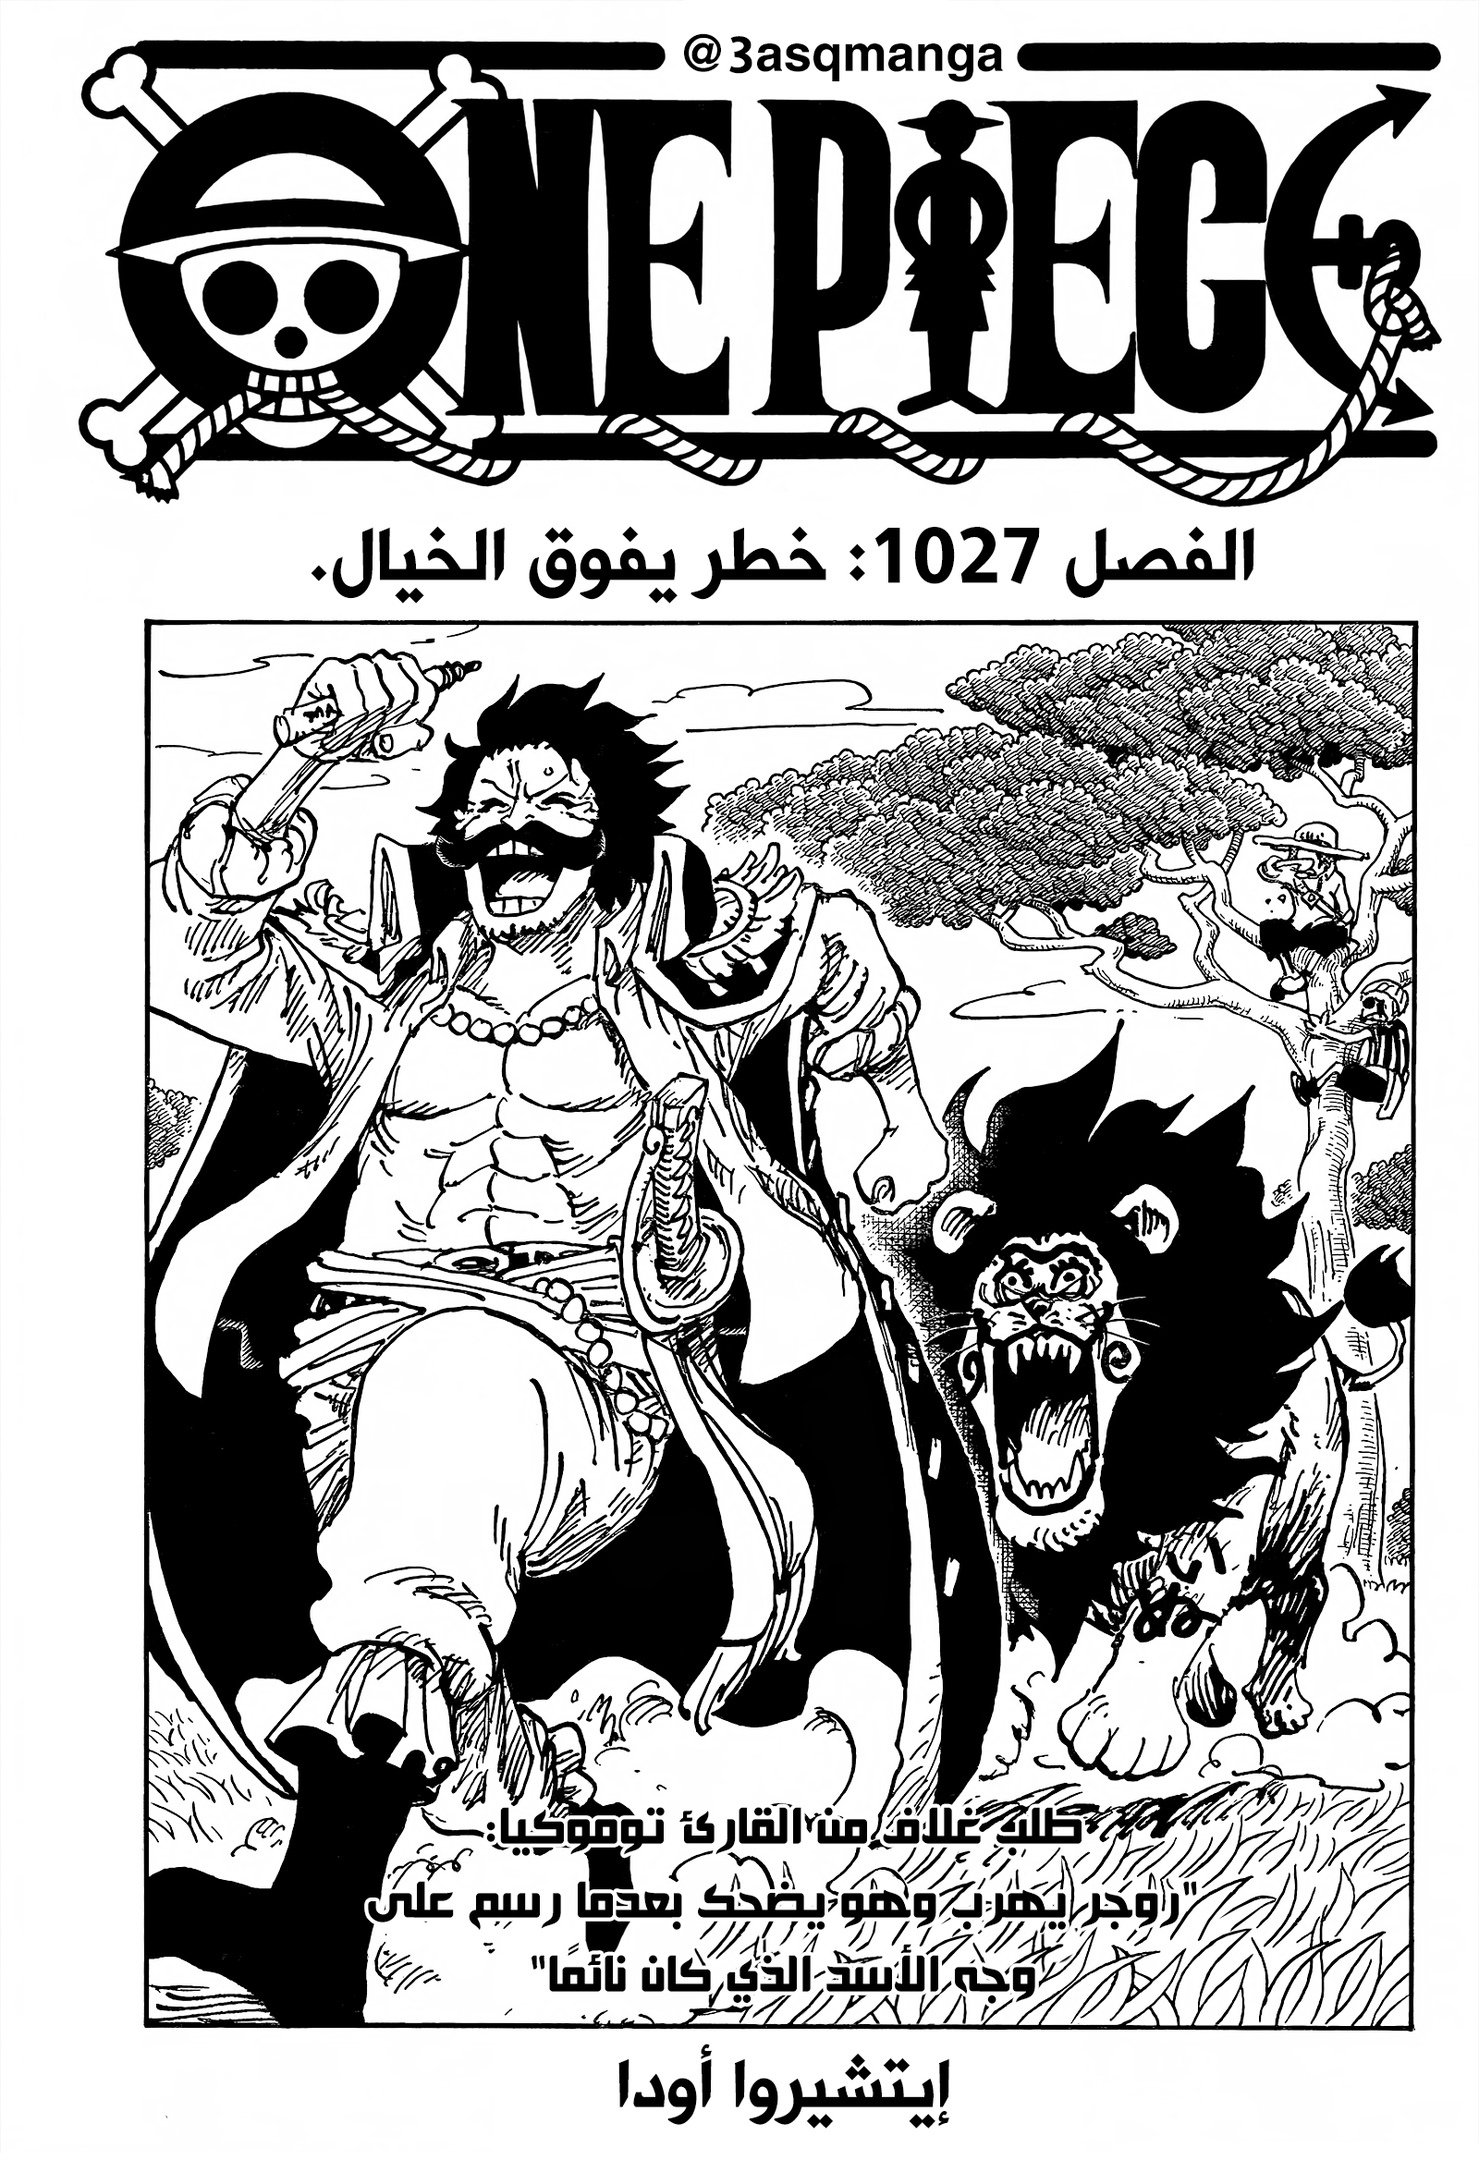 one piece arab chapter 1027, image №1